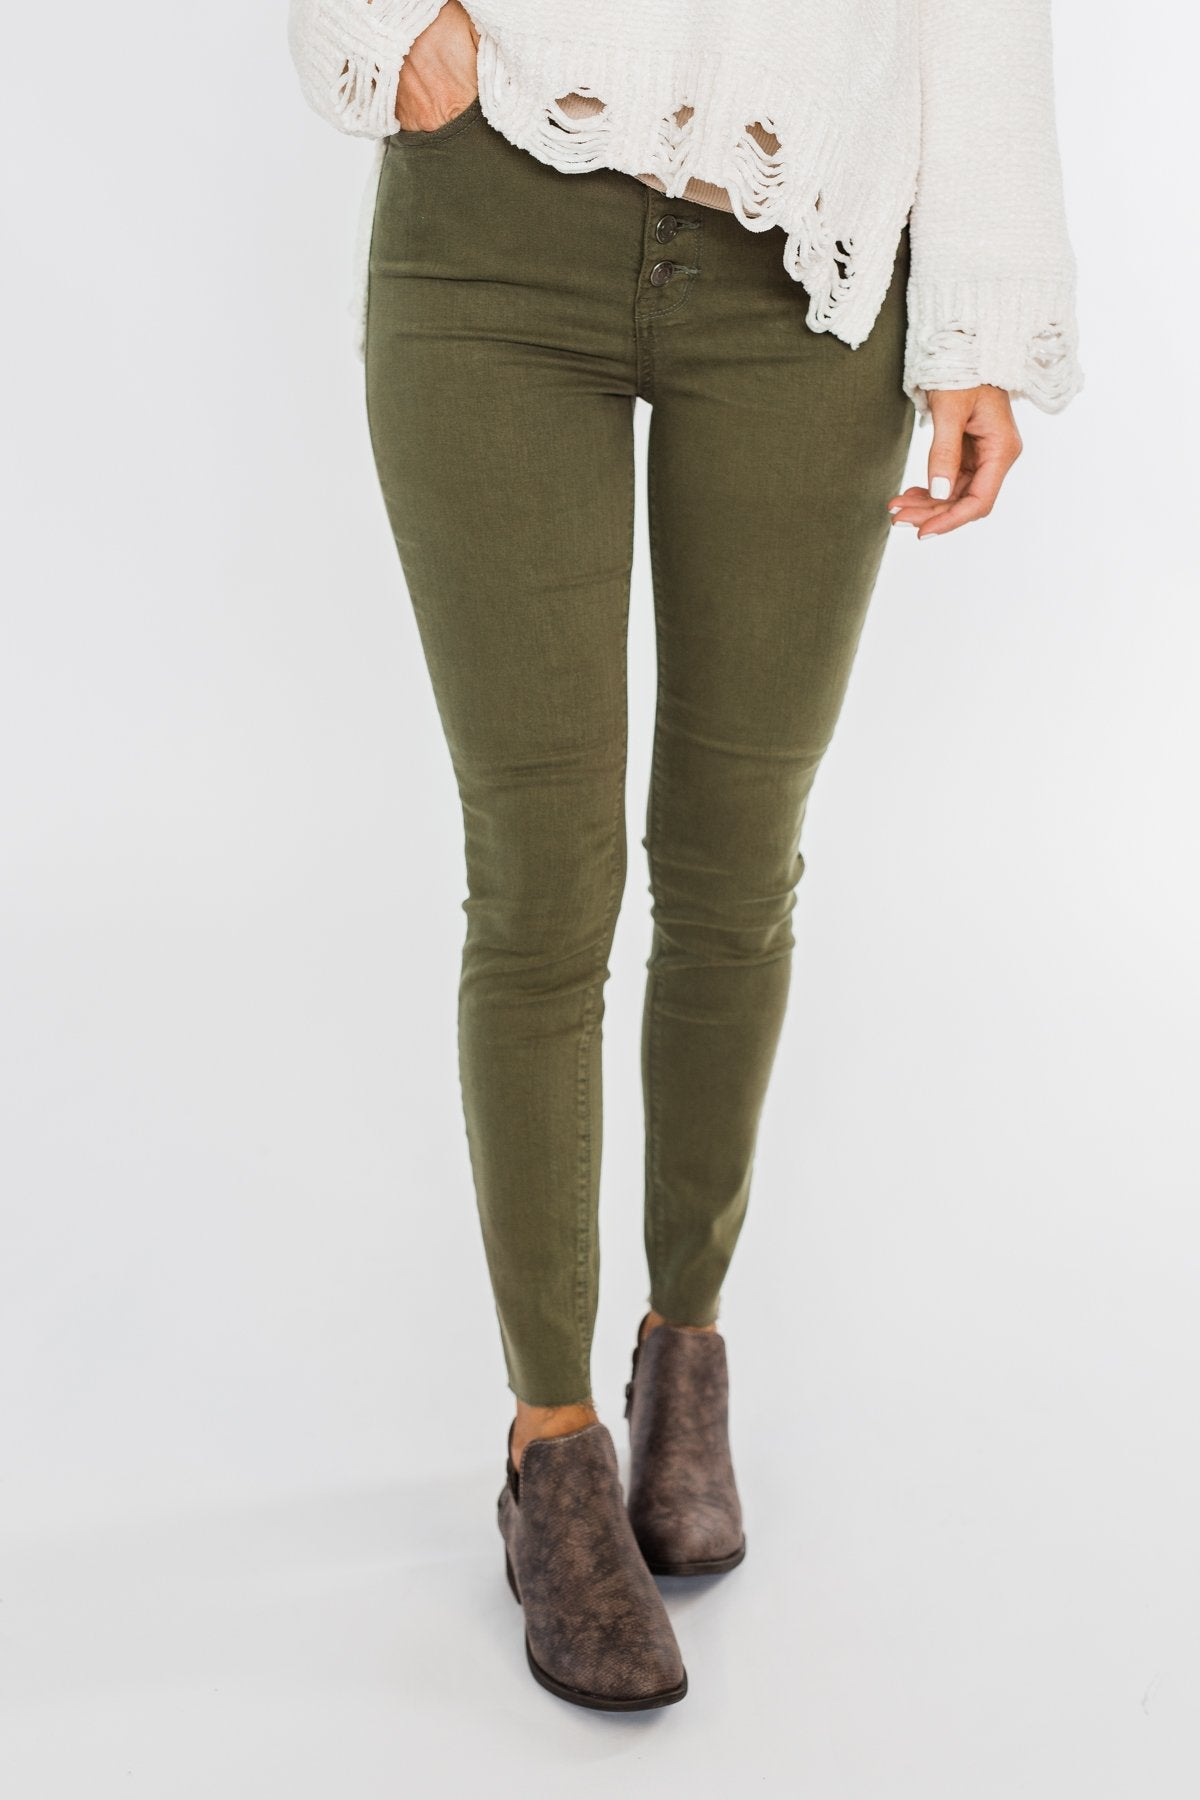 Cello Button Fly Skinny Jeans- Olive